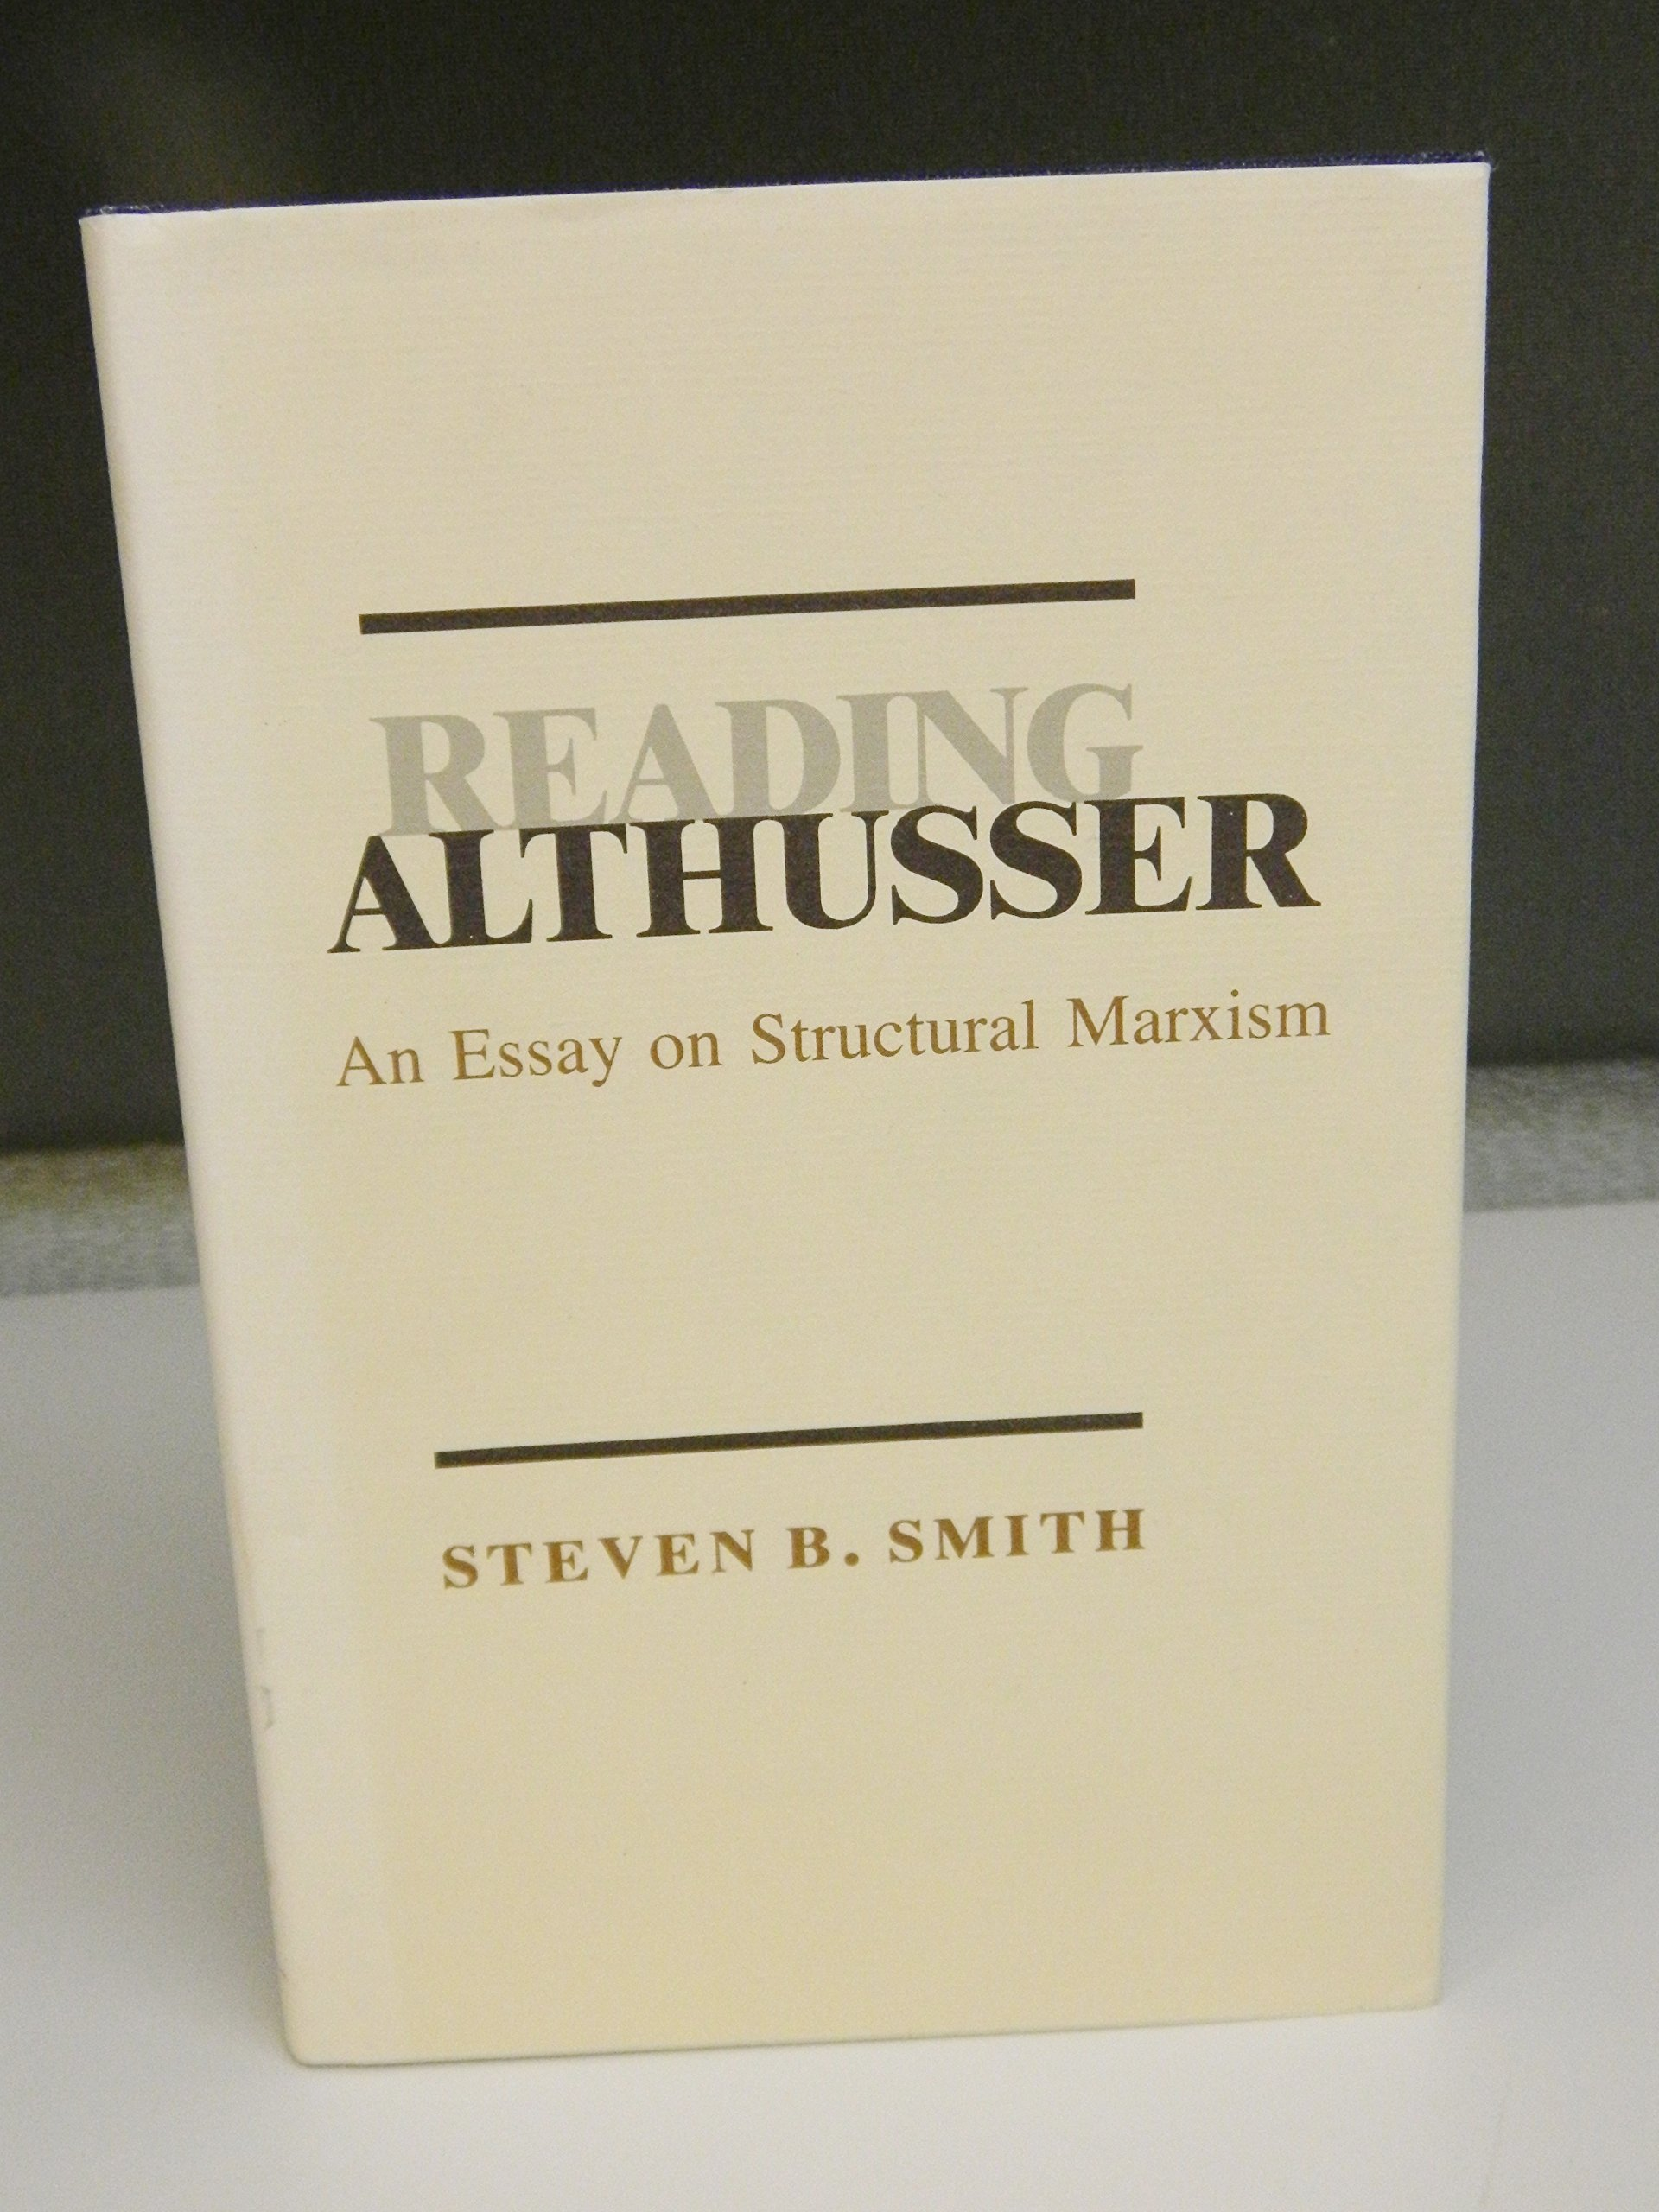 reading althusser an essay on structural marxism steven smith reading althusser an essay on structural marxism steven smith 9780801416729 com books